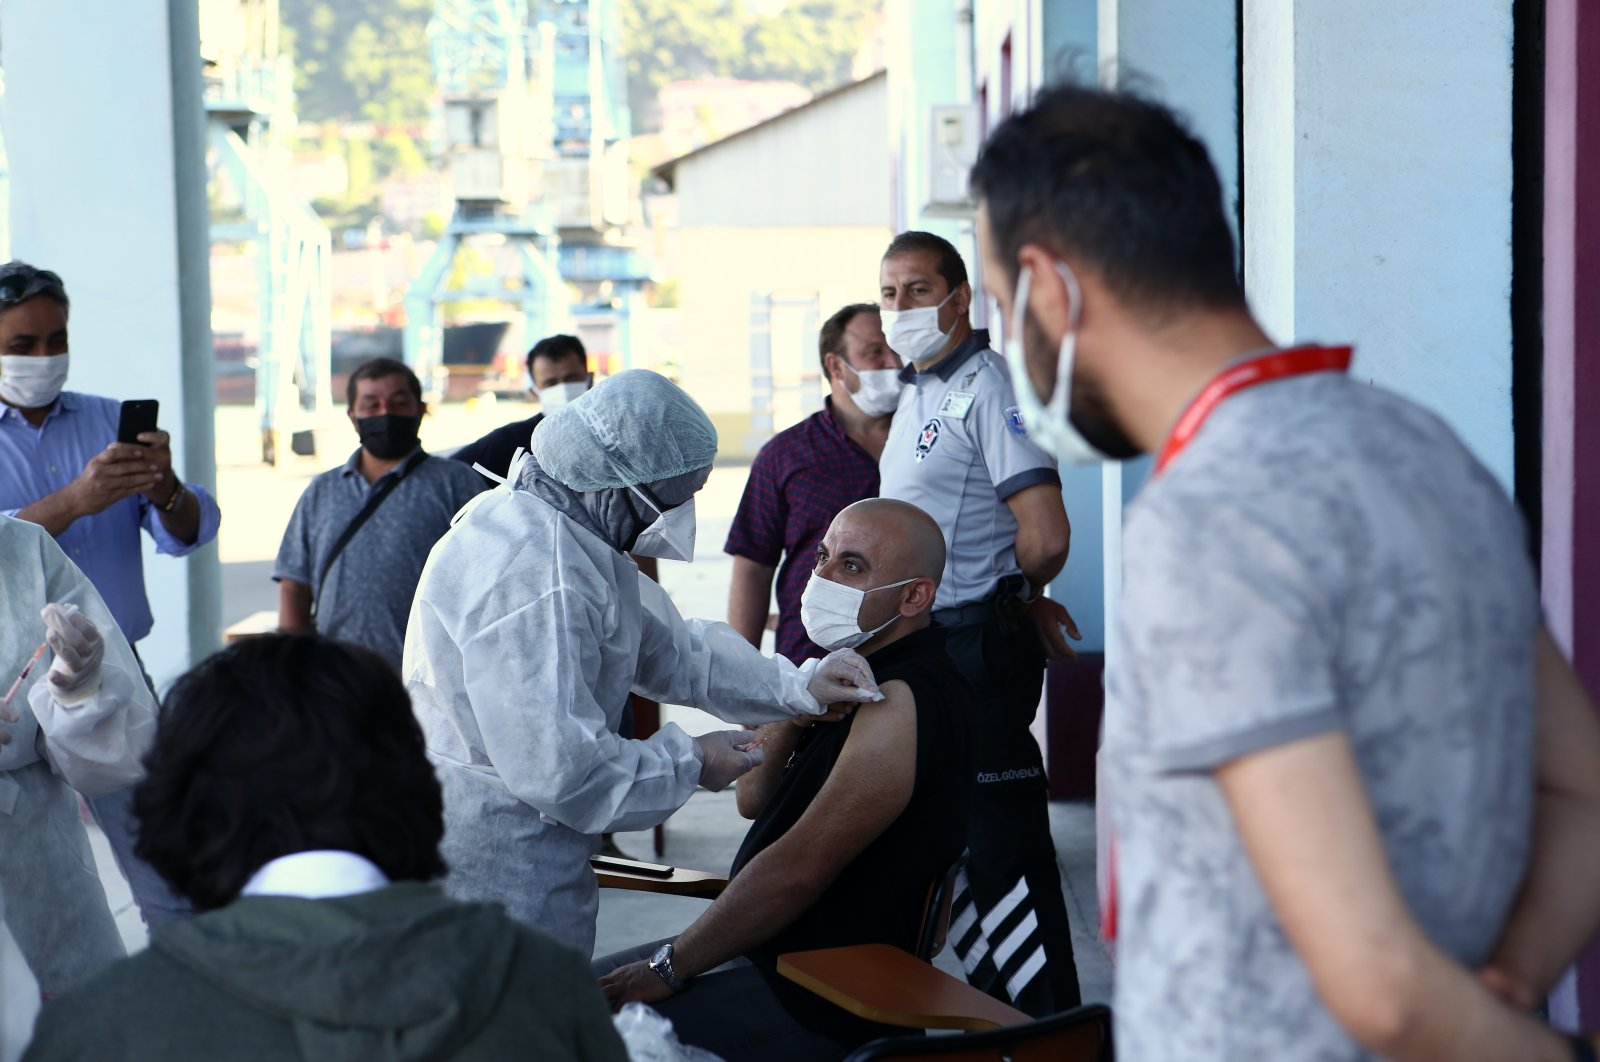 People get vaccinated at a vaccination spot in Trabzon, northern Turkey, Sept. 22, 2021. (AA PHOTO)